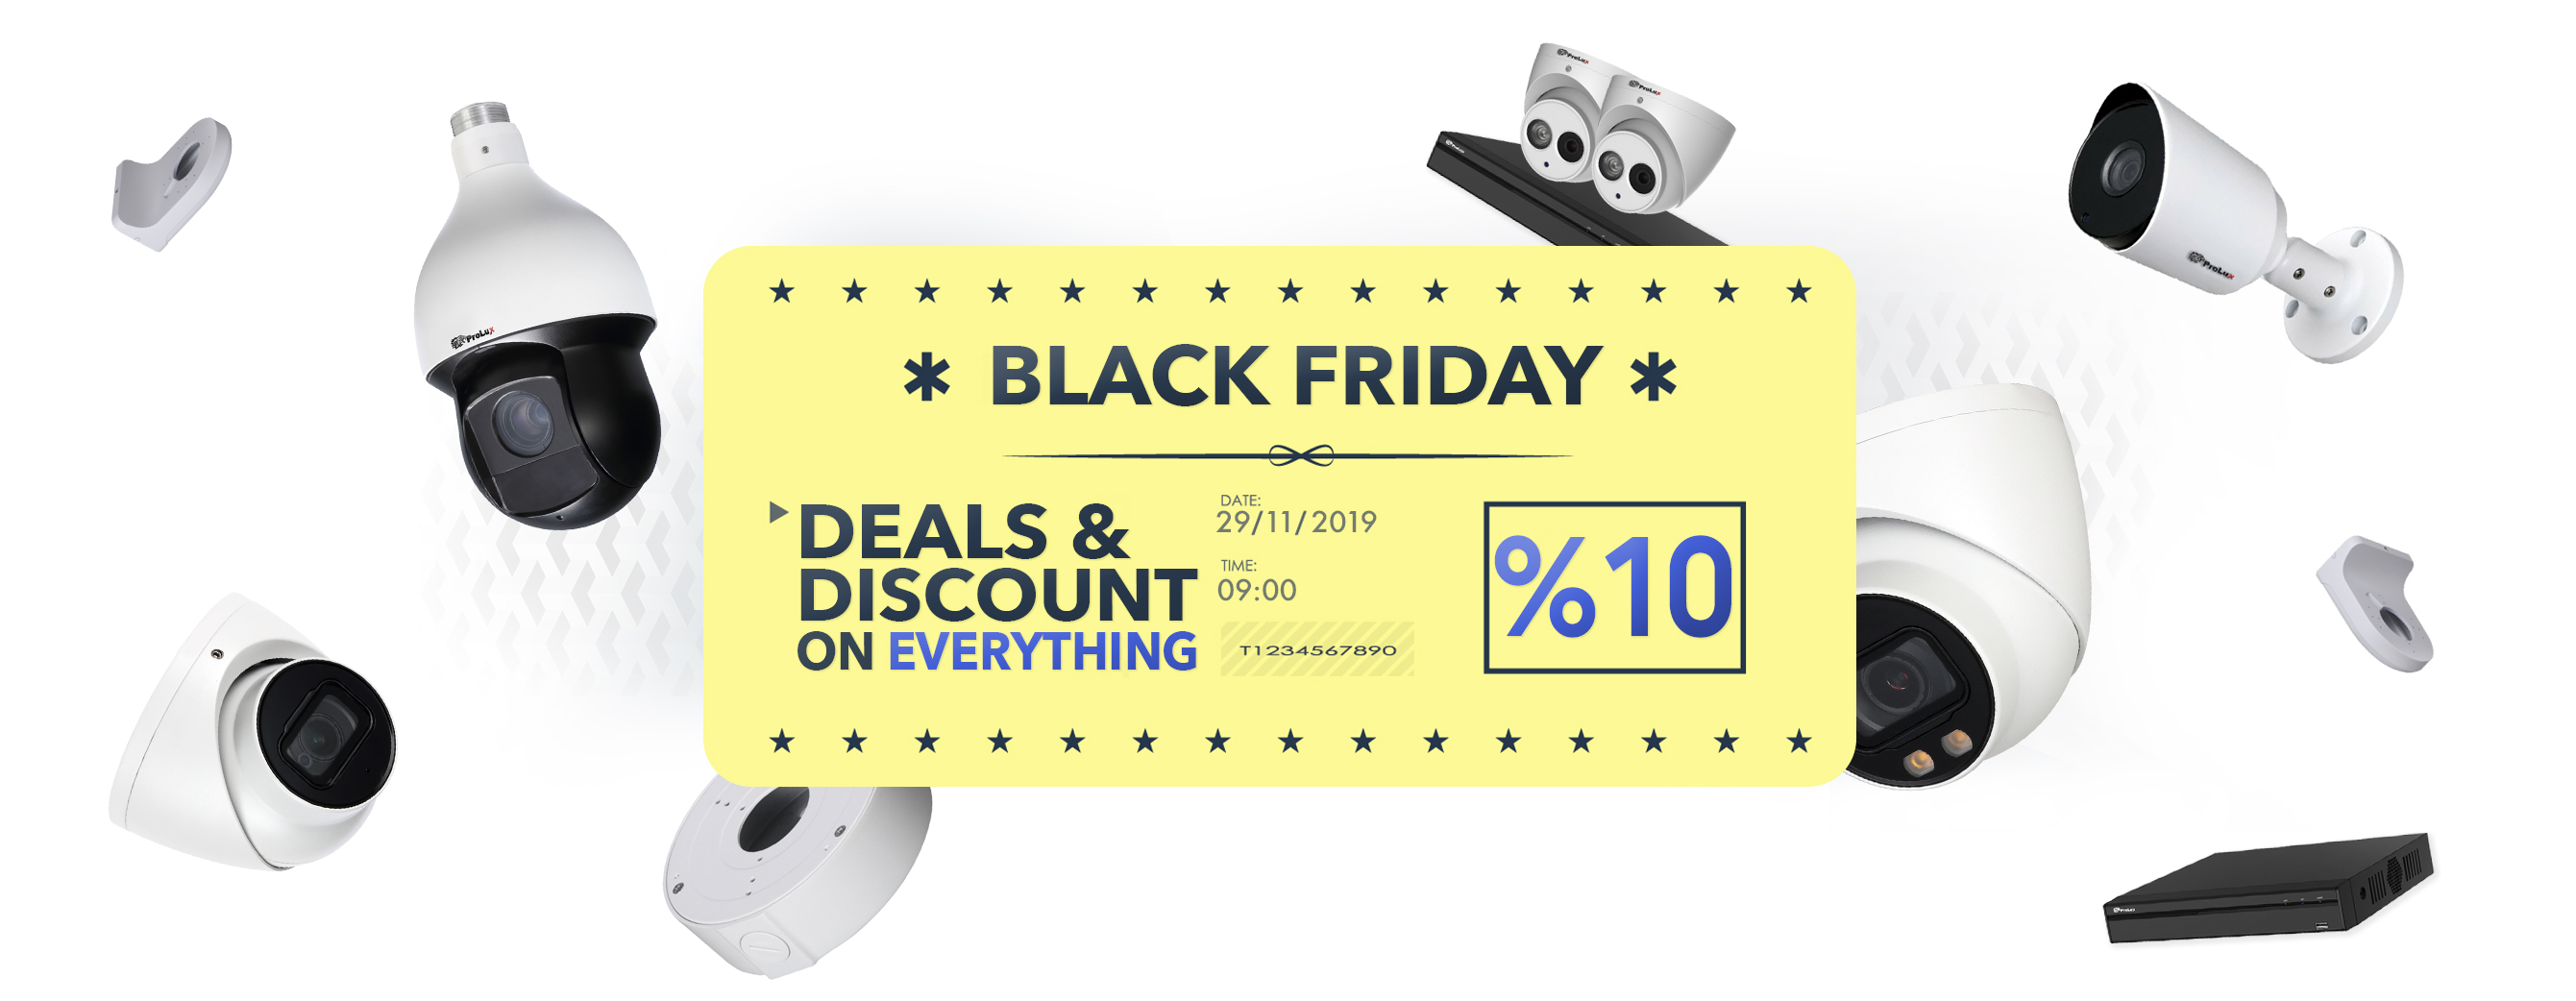 cctv-security-safety-surveillance-black-friday-deals